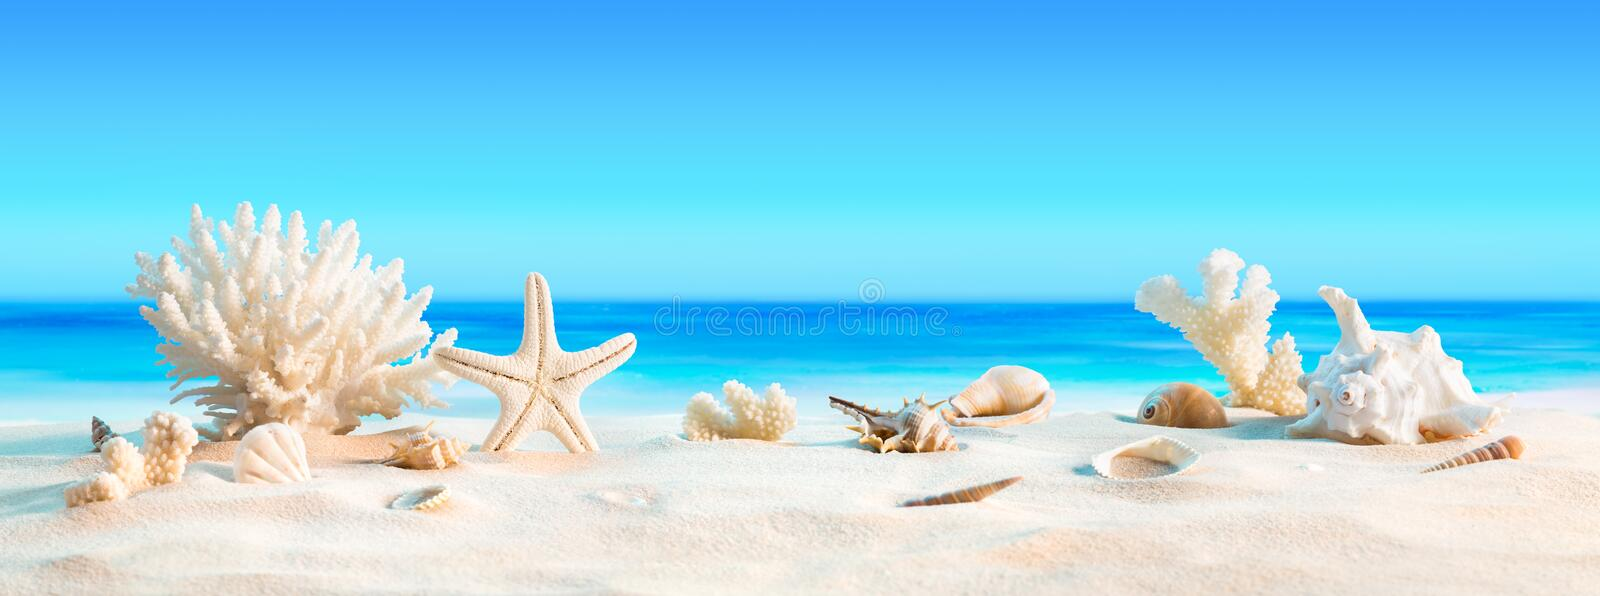 Landscape with seashells on tropical beach royalty free stock image